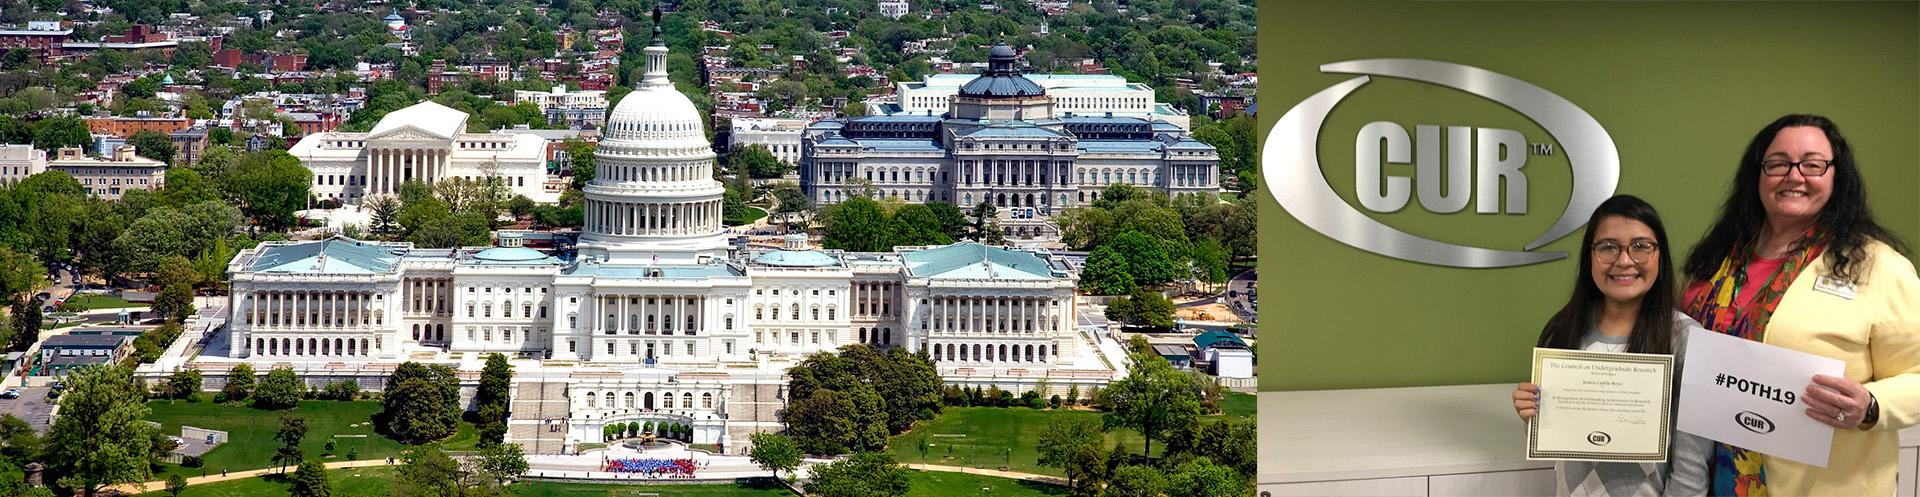 Posters on the Hill - Abstracts due November 5th